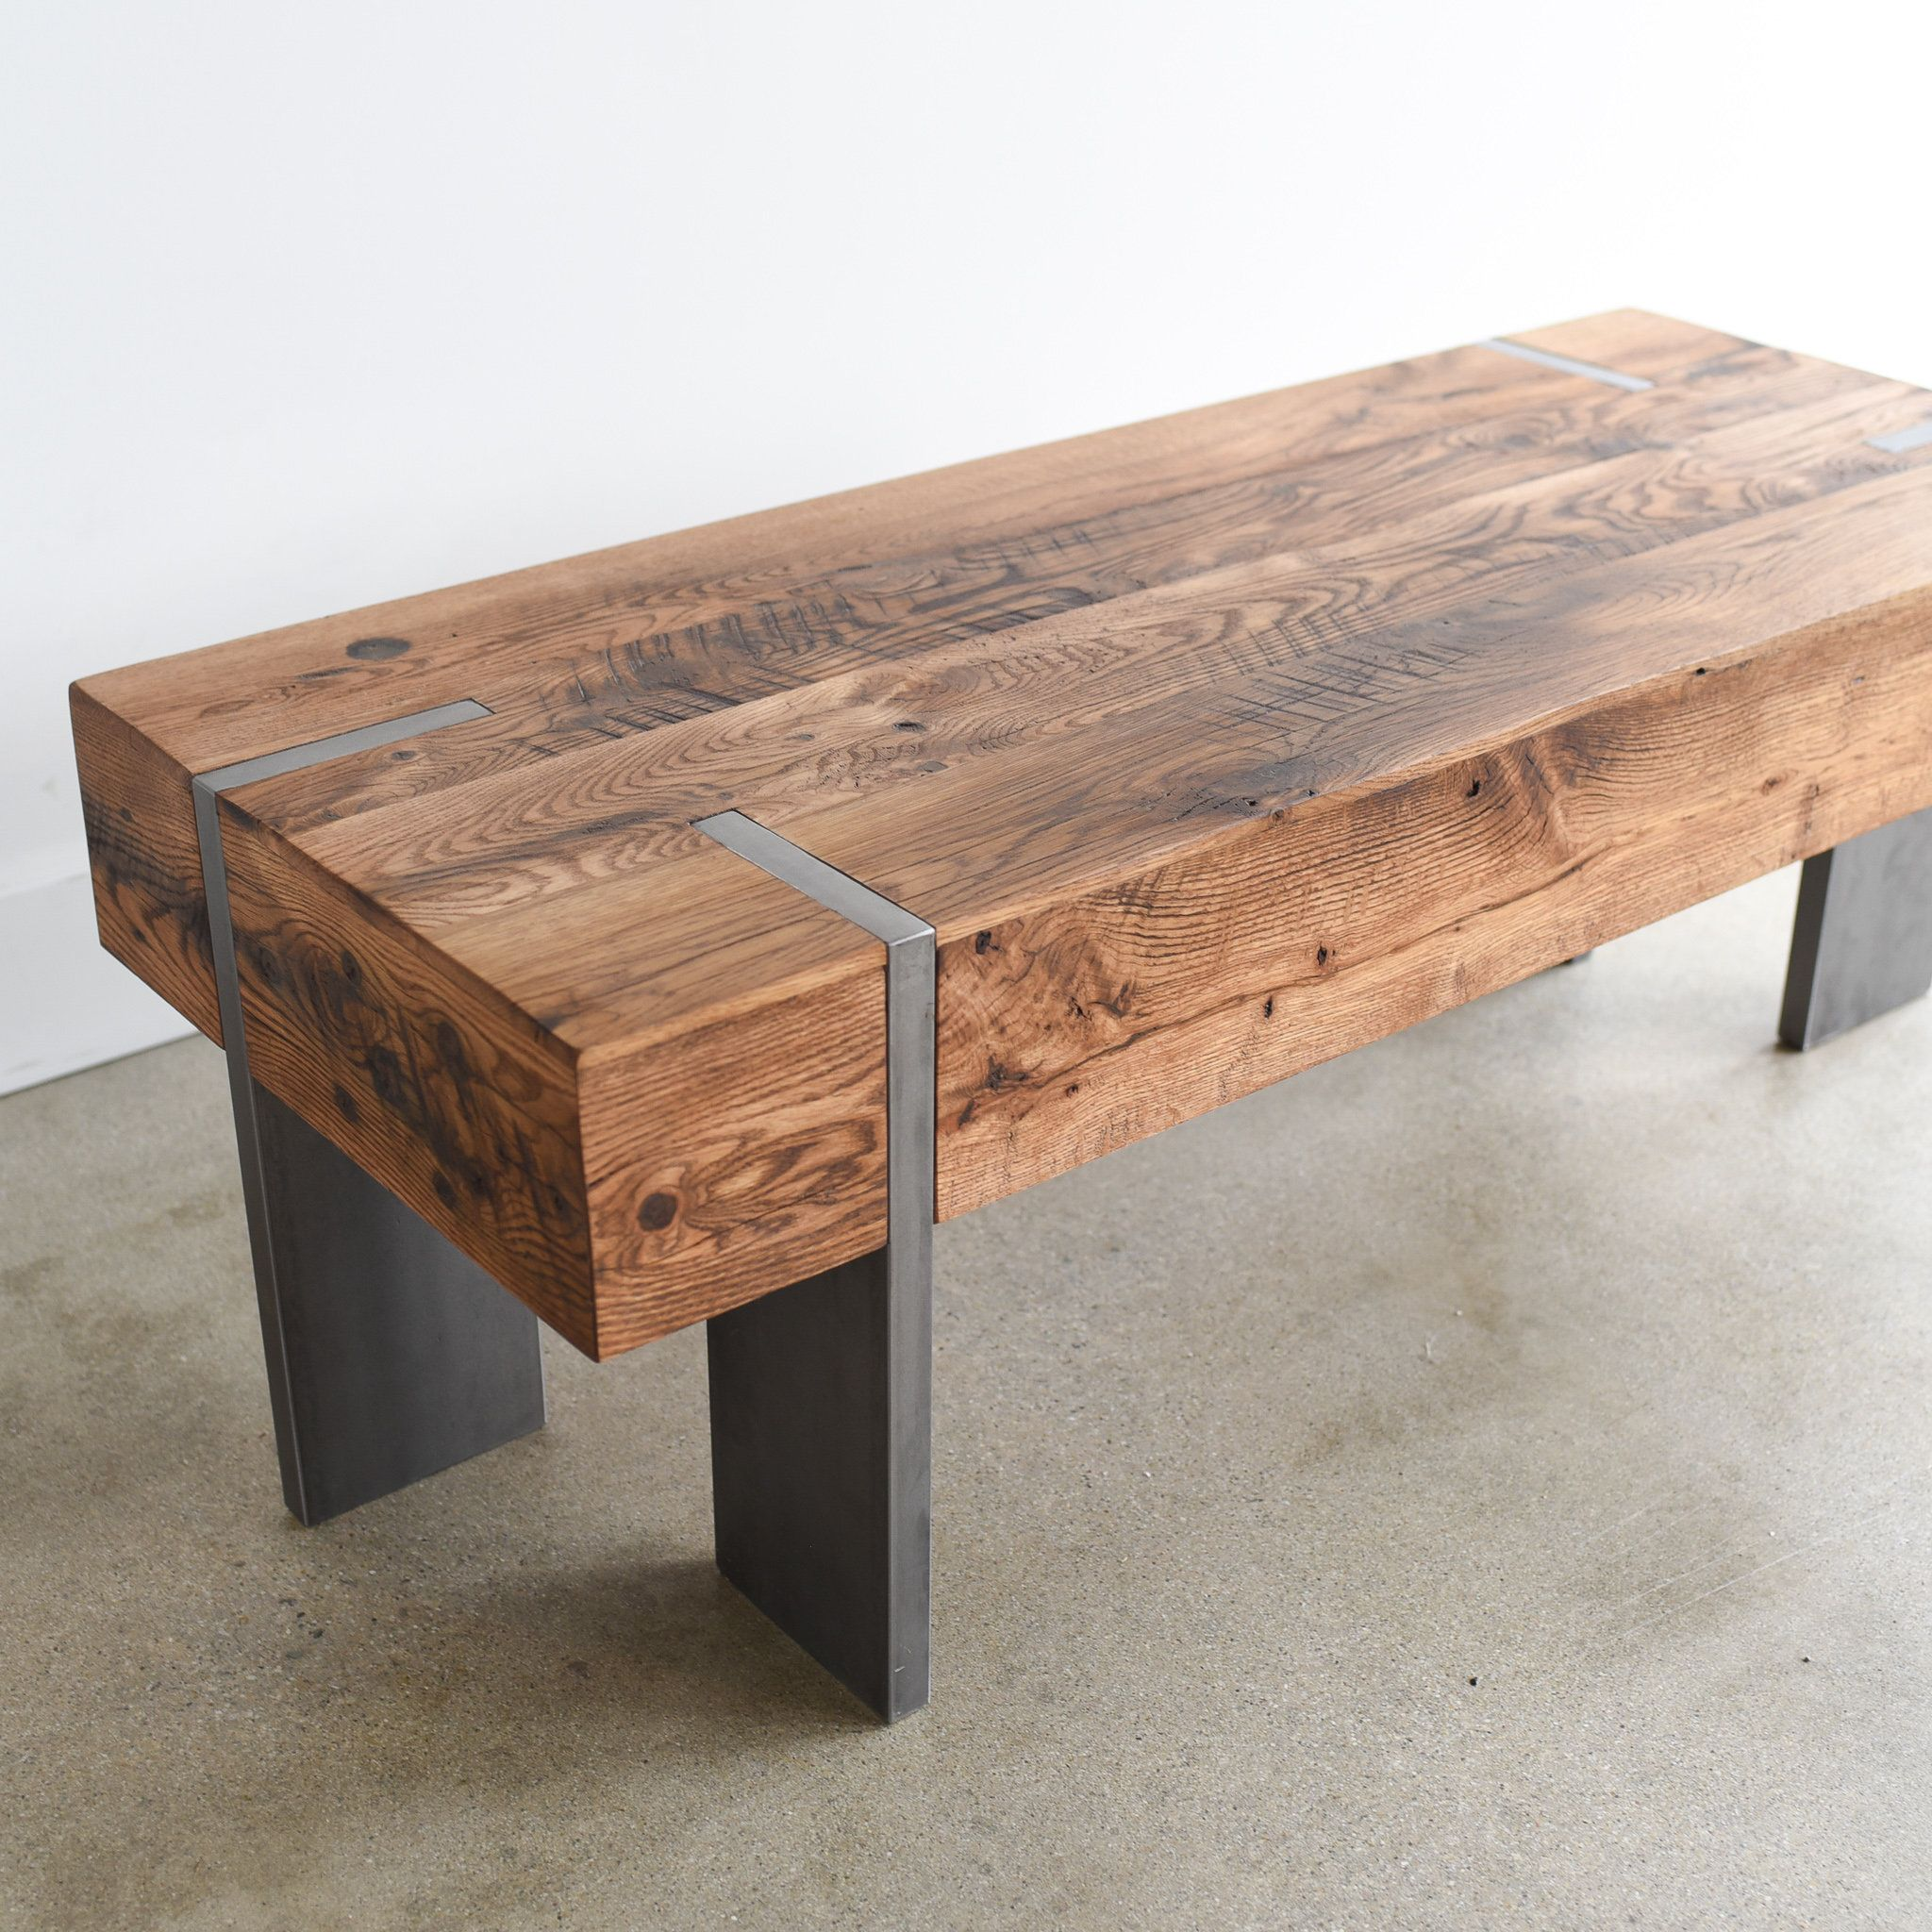 Modern Coffee Table / Reclaimed Wood Rectangle Cocktail Table with Solid Steel Legs